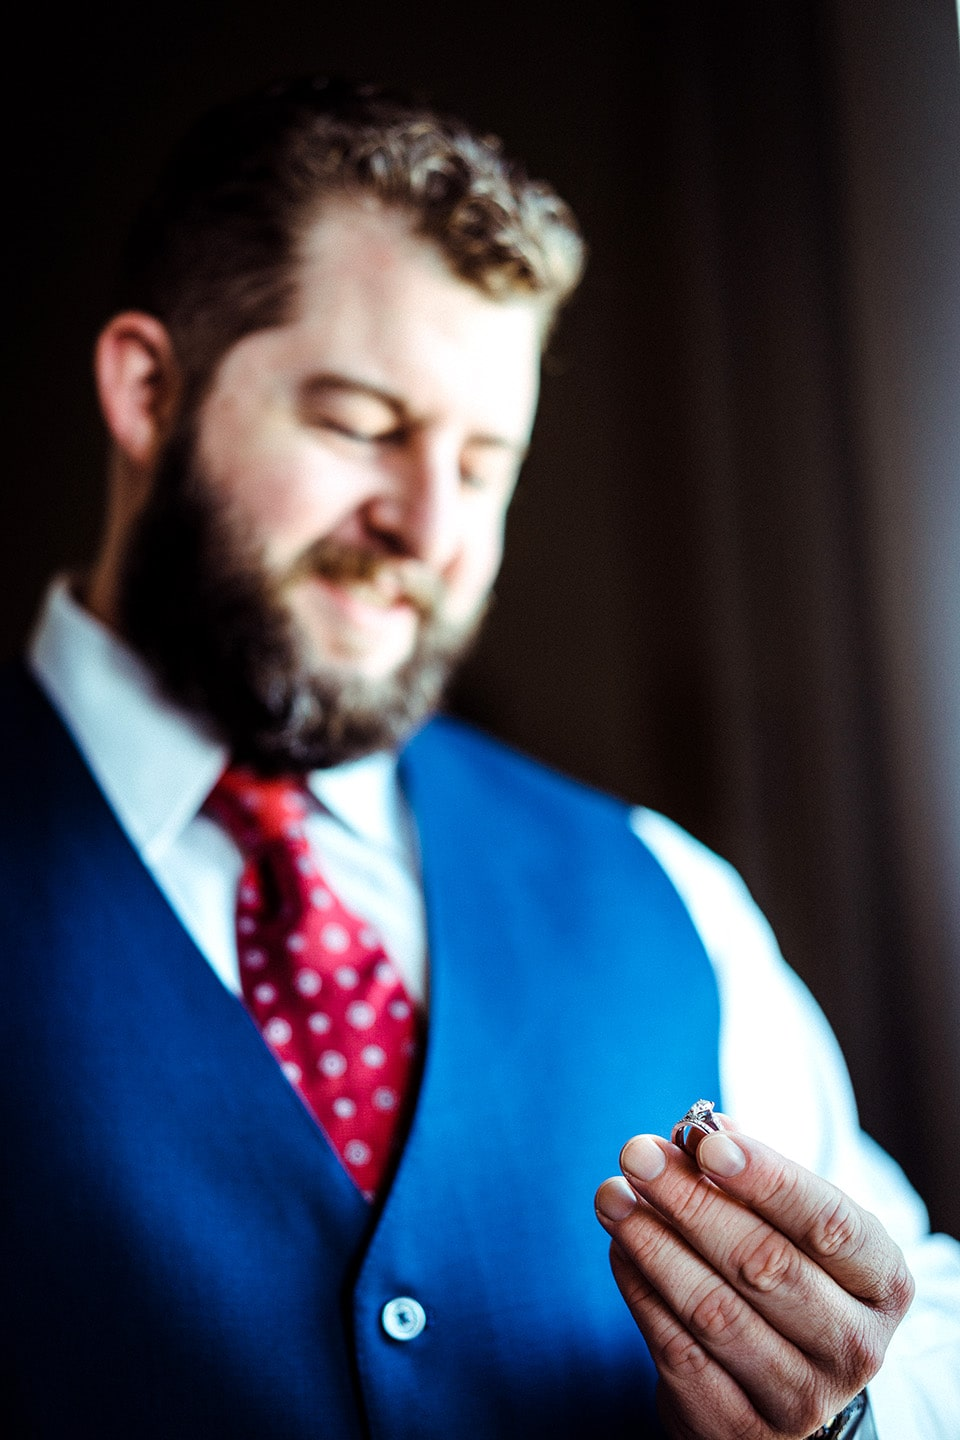 Groom smiles down at his wife's wedding ring